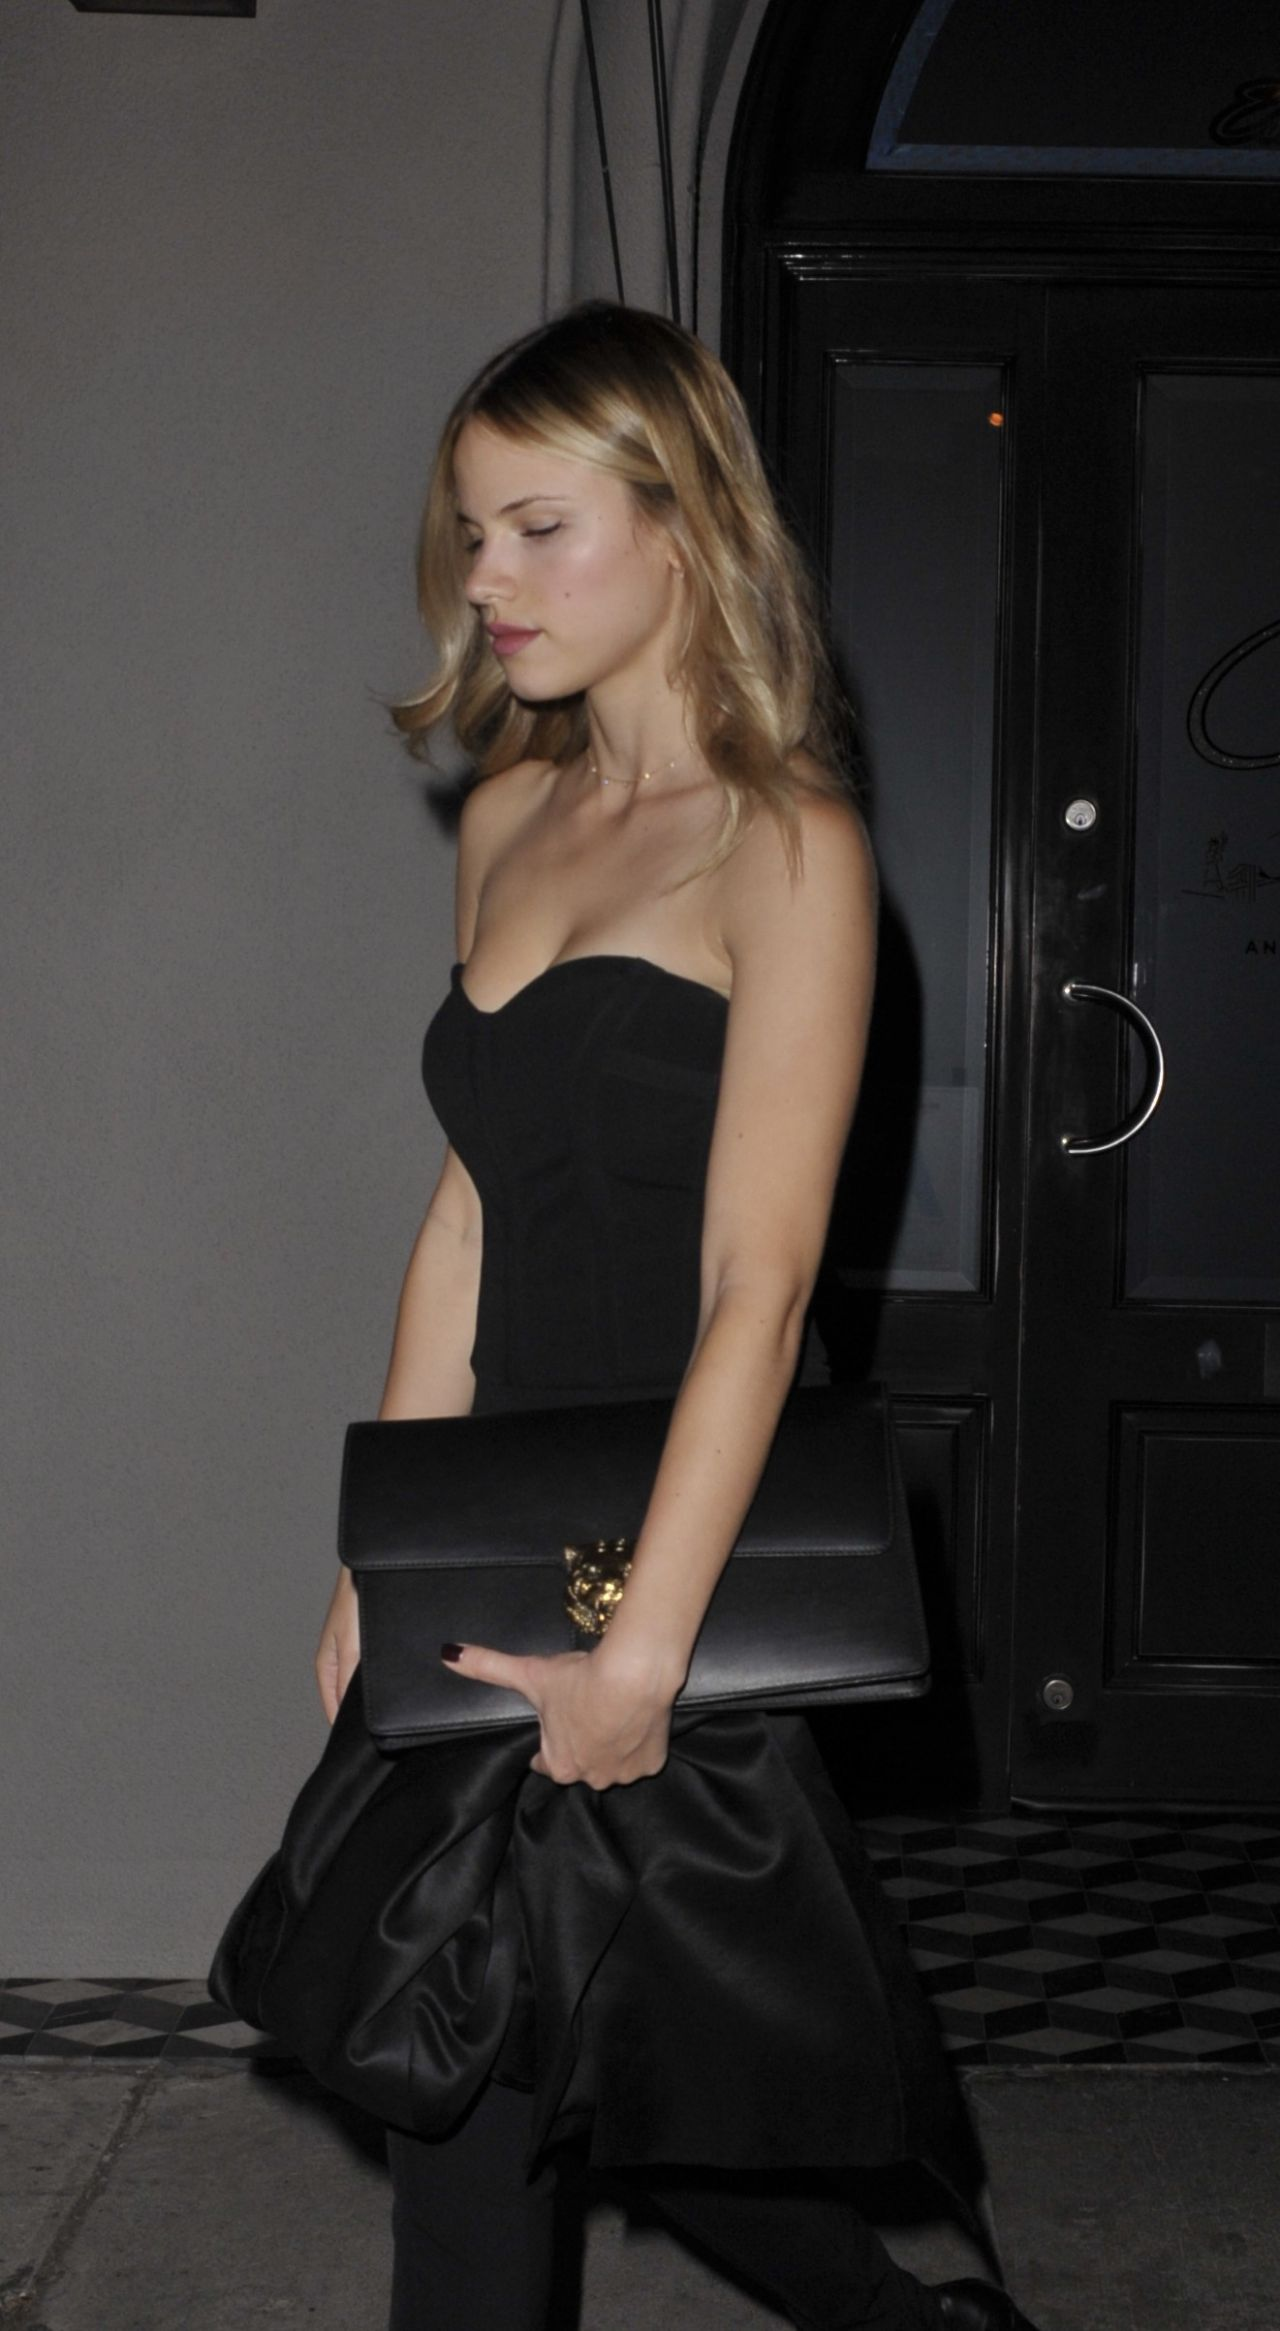 halston sage after dinner at craigs restaurant in west